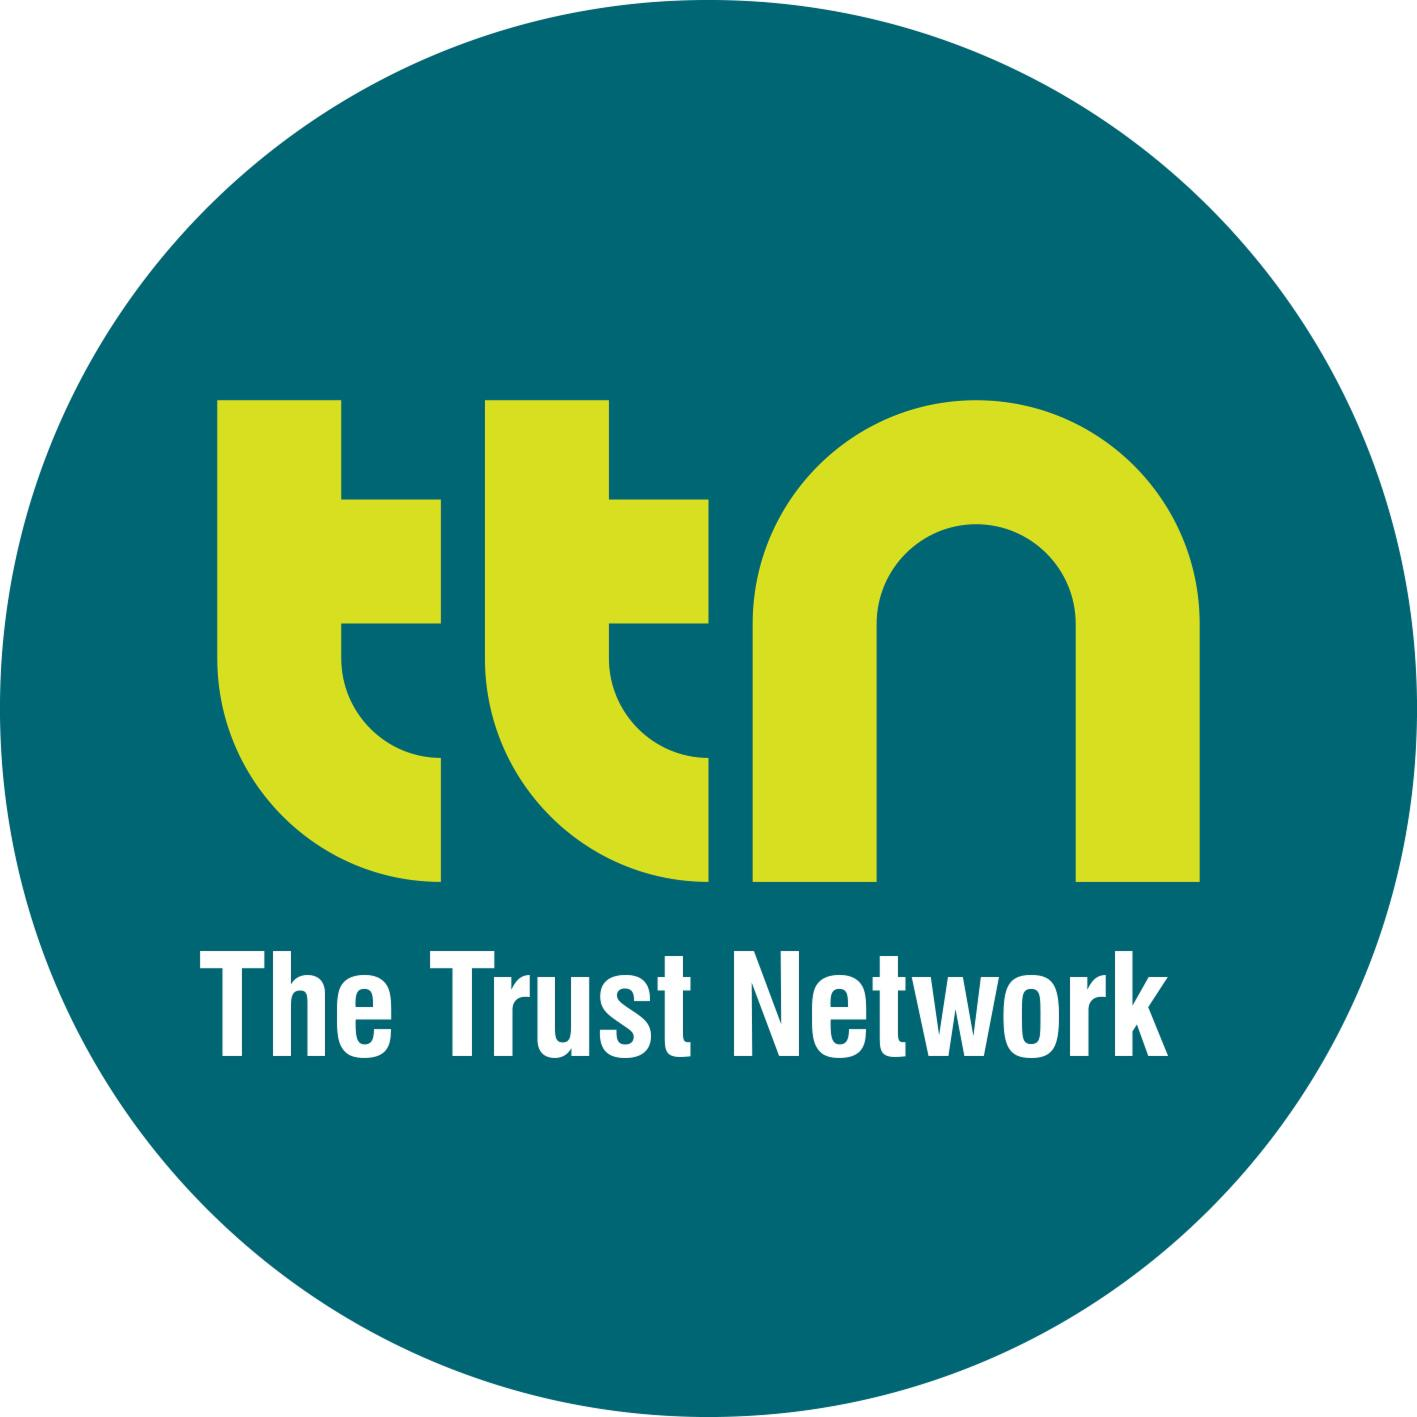 The Trust Network